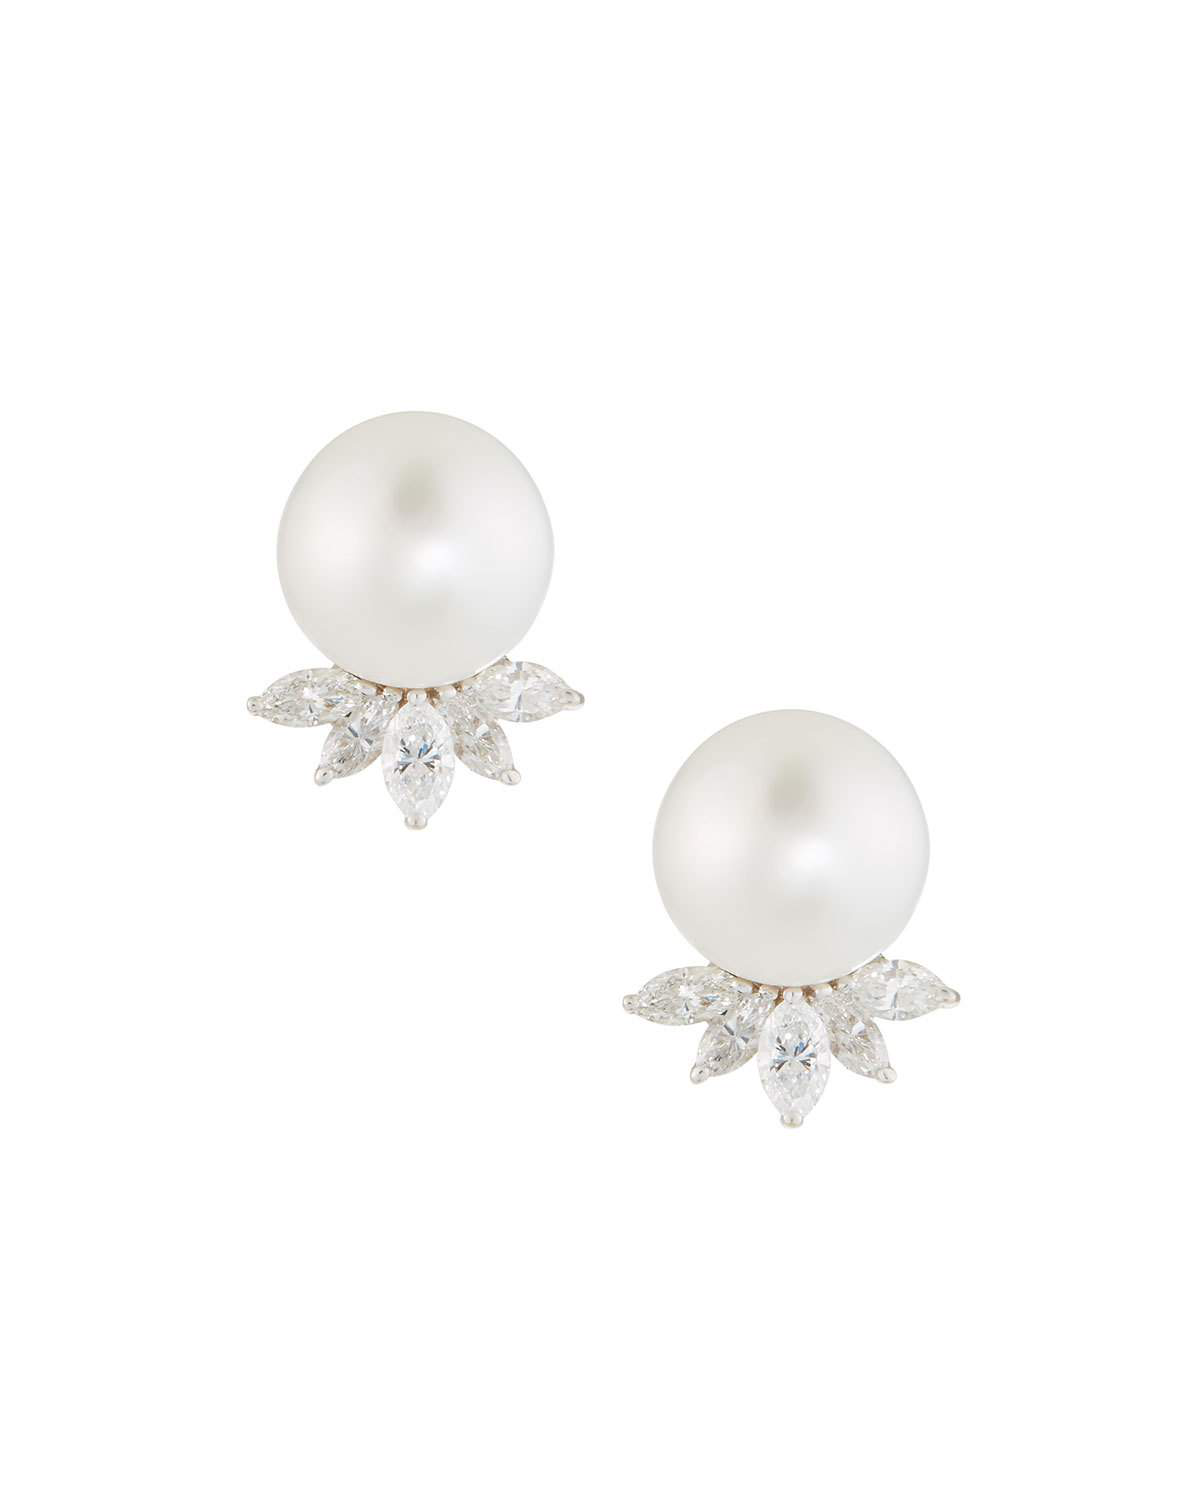 Diana M. Jewels 18K White Gold Pearl & Diamond Marquise Earrings